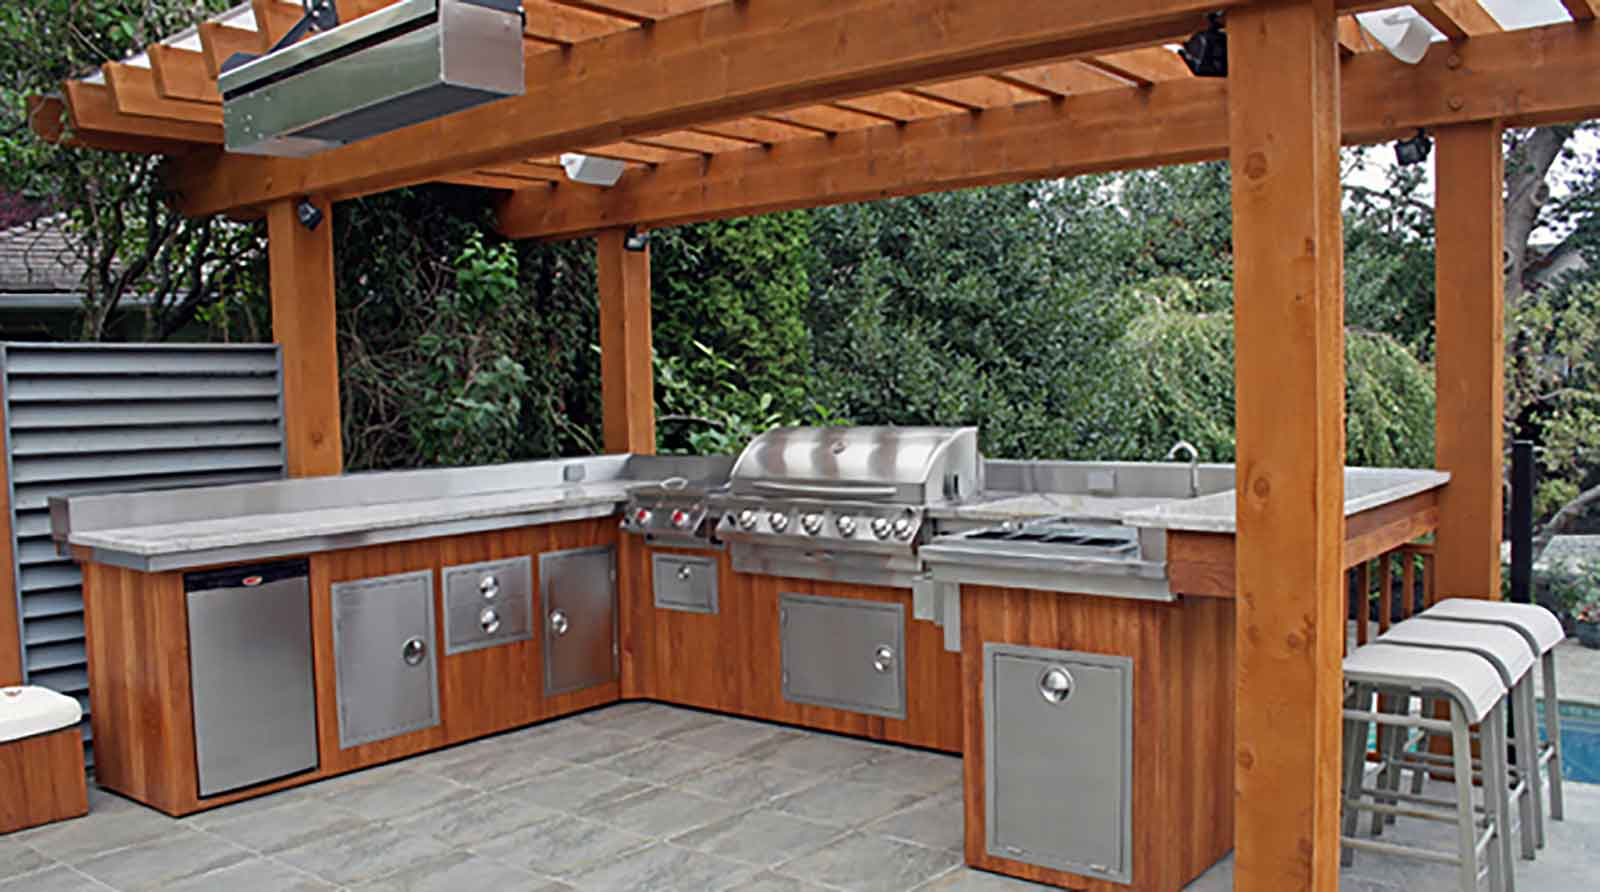 Custom designed outdoor kitchens azuro concepts for Outdoor kitchen refrigerators built in